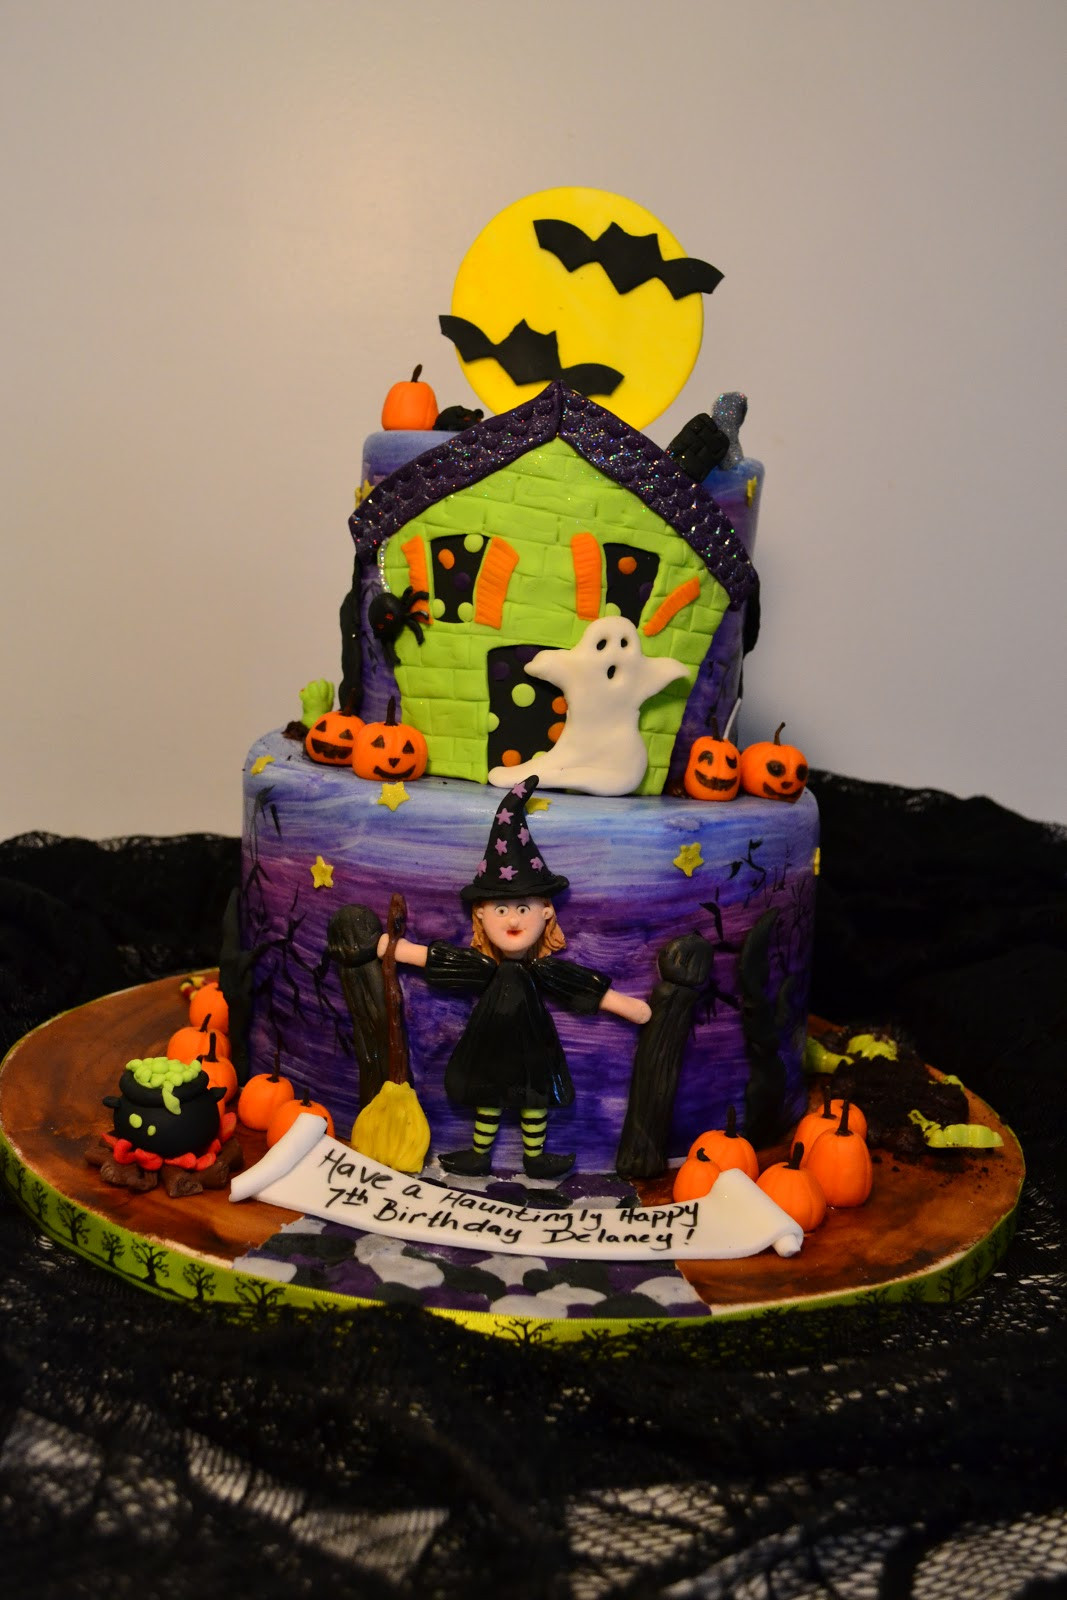 Halloween Cakes And Cupcakes  Oh just put a cupcake in it Halloween birthday cake